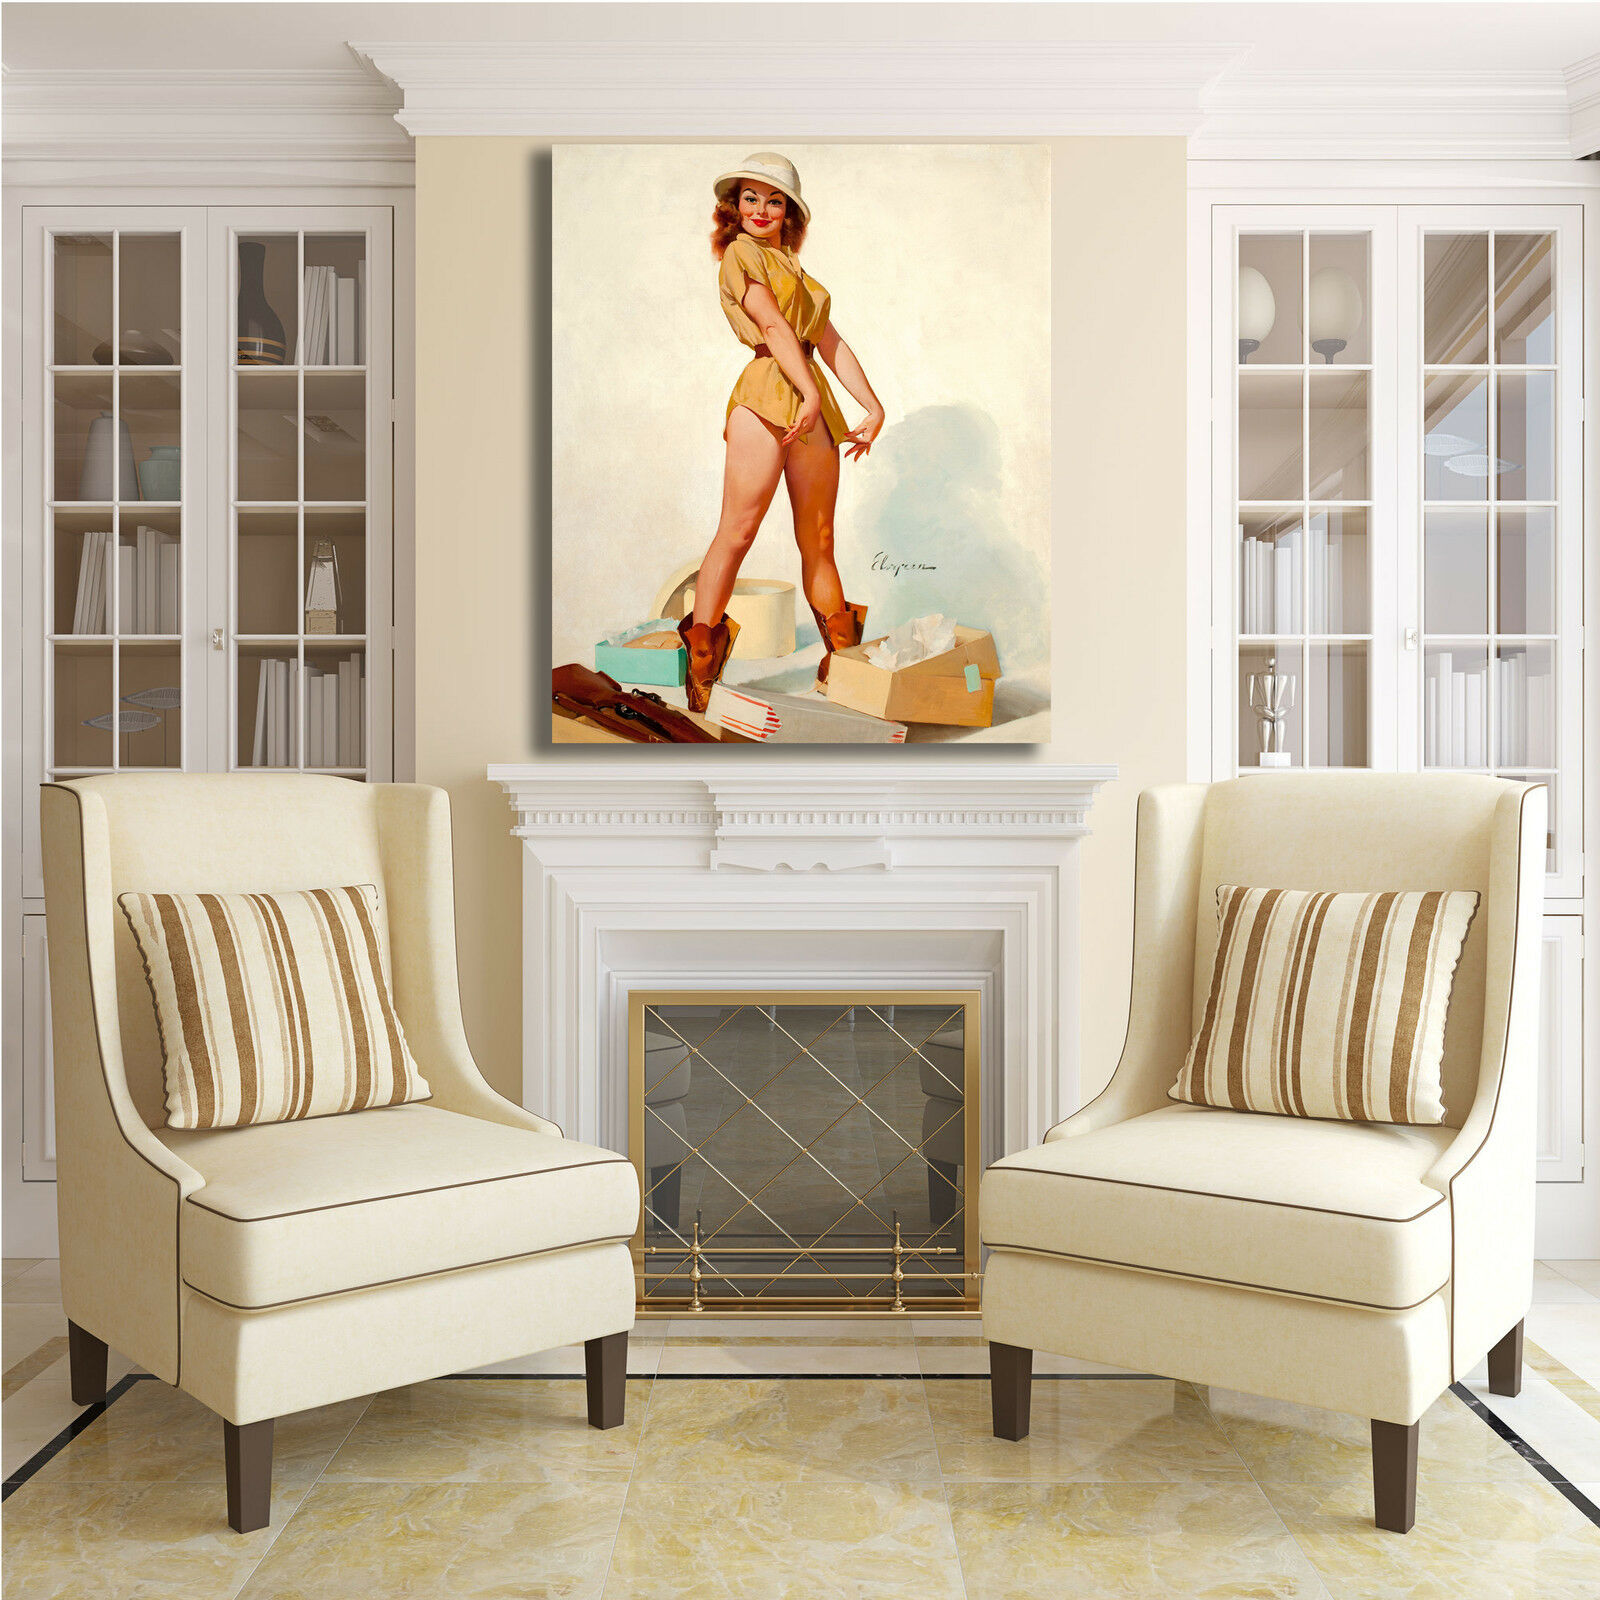 Pin Up vintage anni 50 quadro 60 70 design quadro 50 stampa tela telaio arRouge o casa 15 396d86